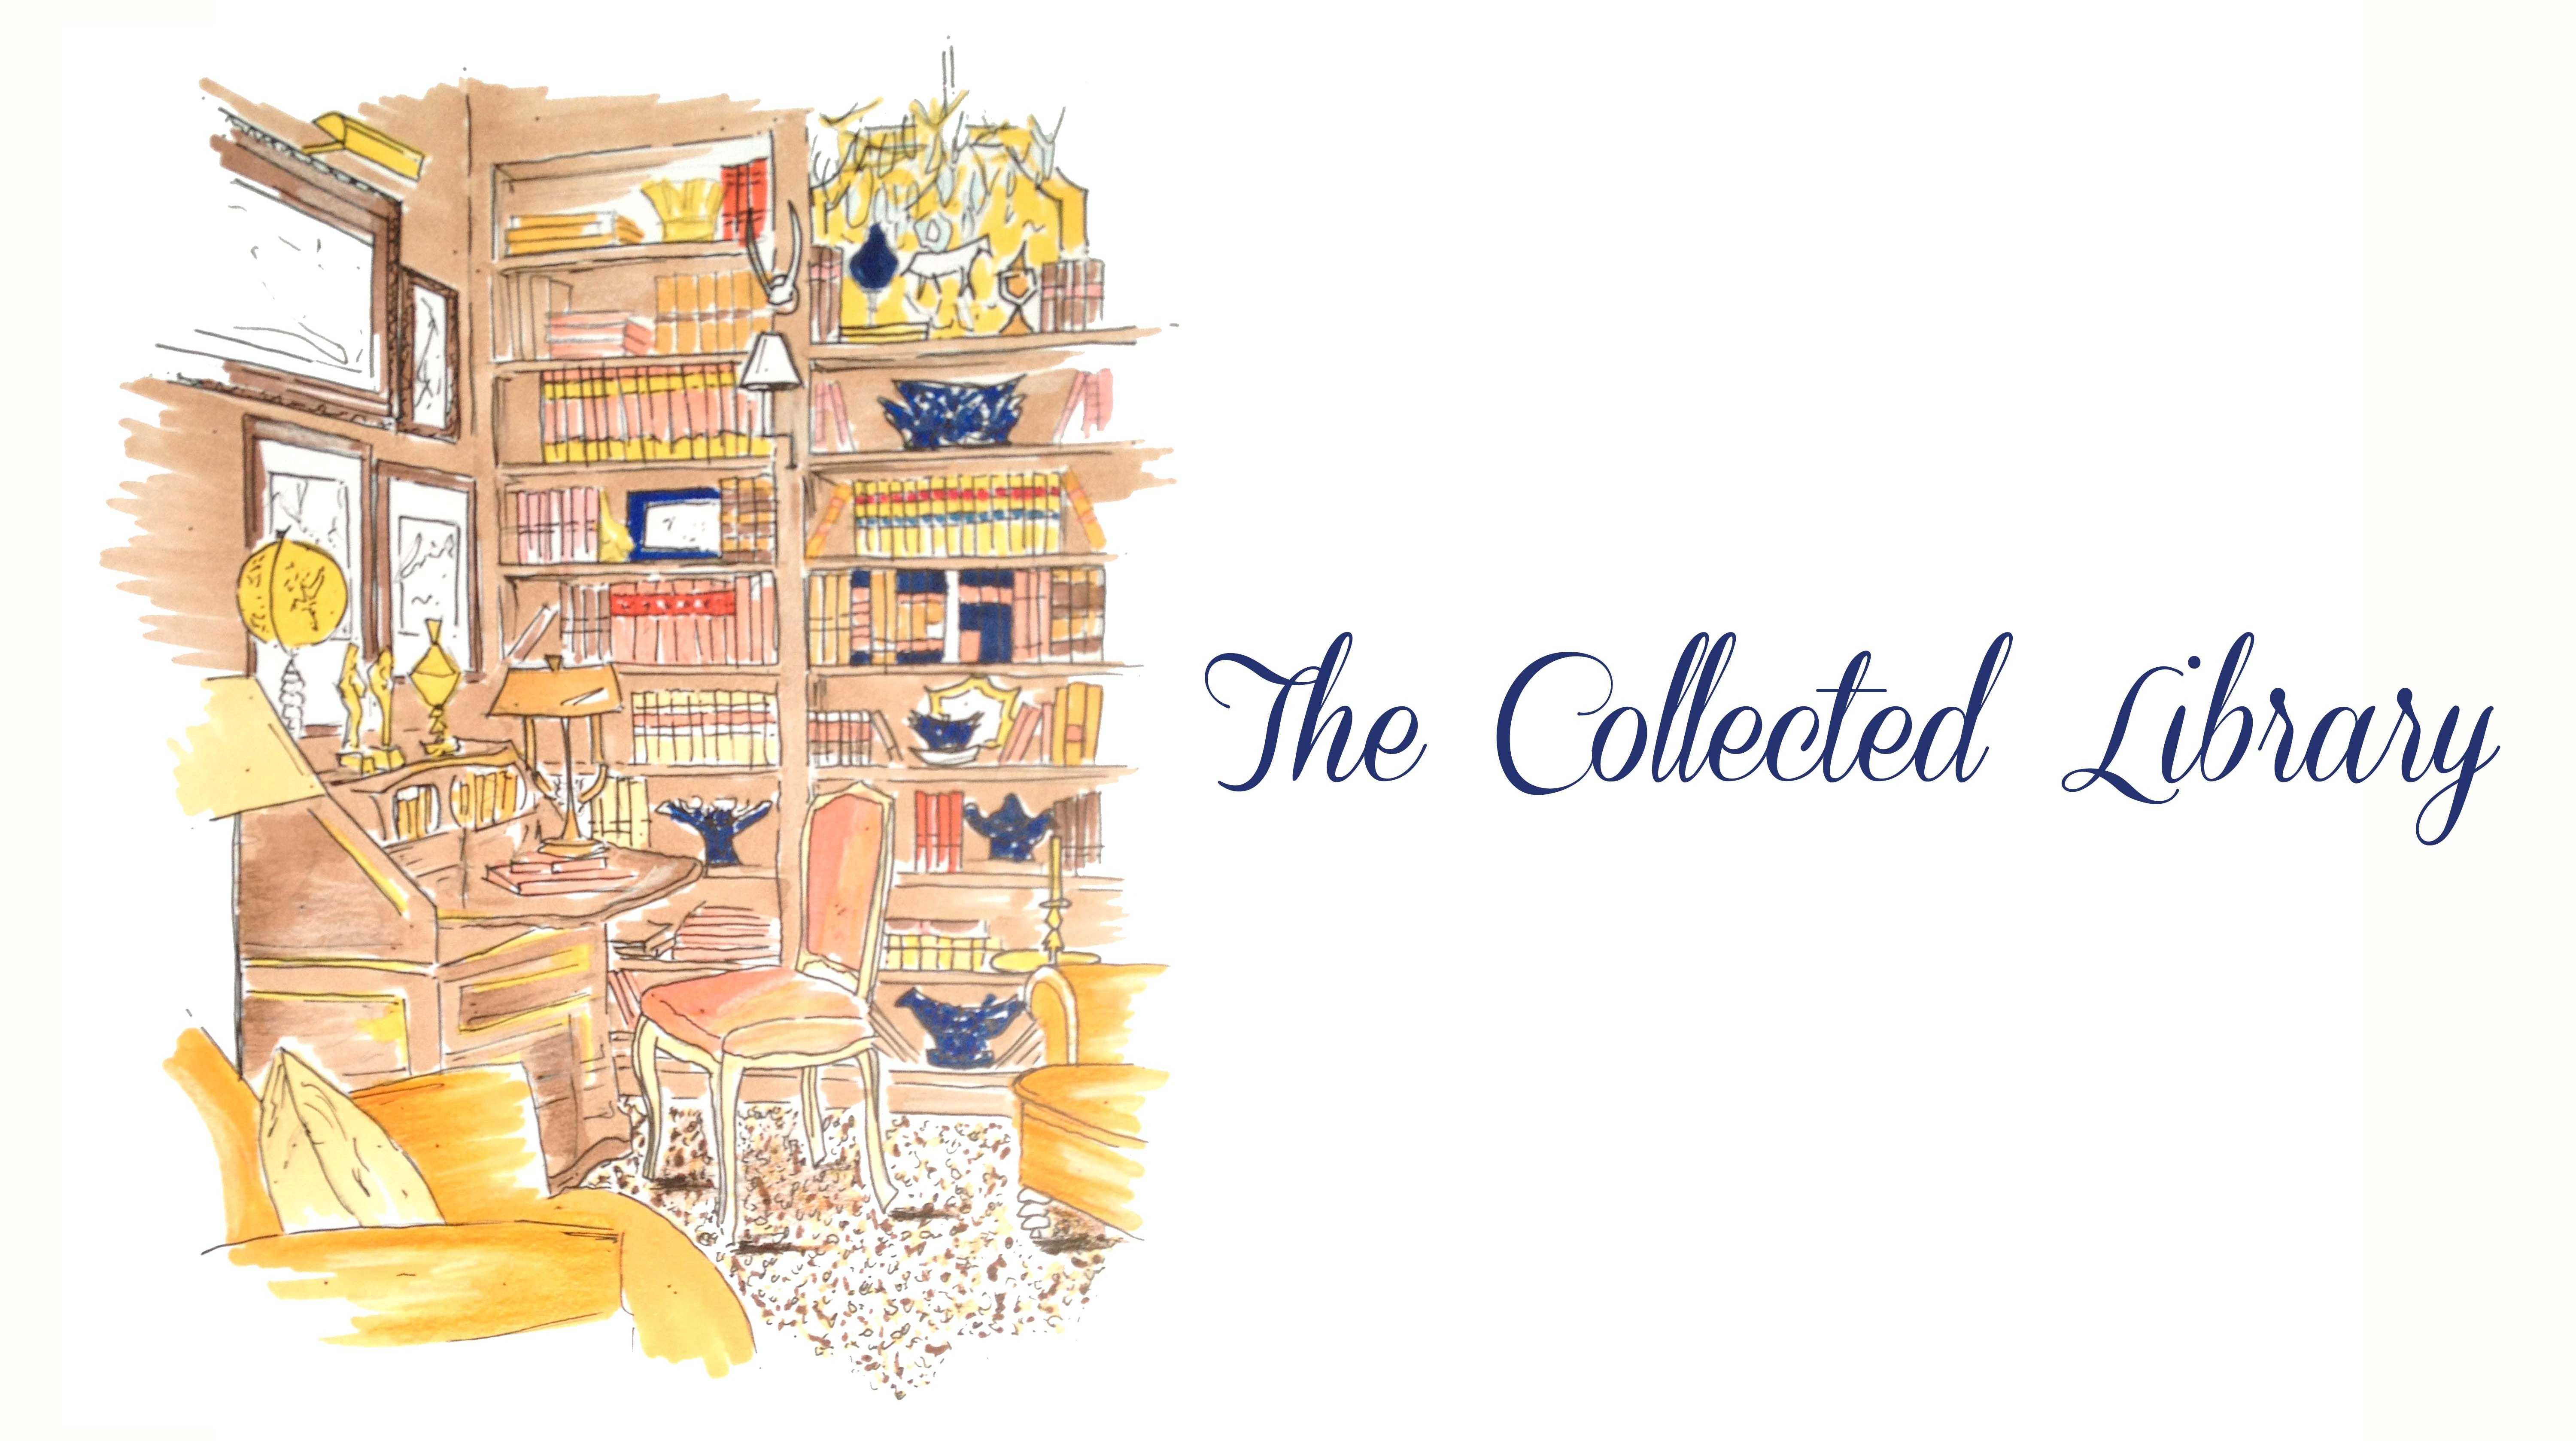 north carolina interior designer kathryn greeley presents the collected library